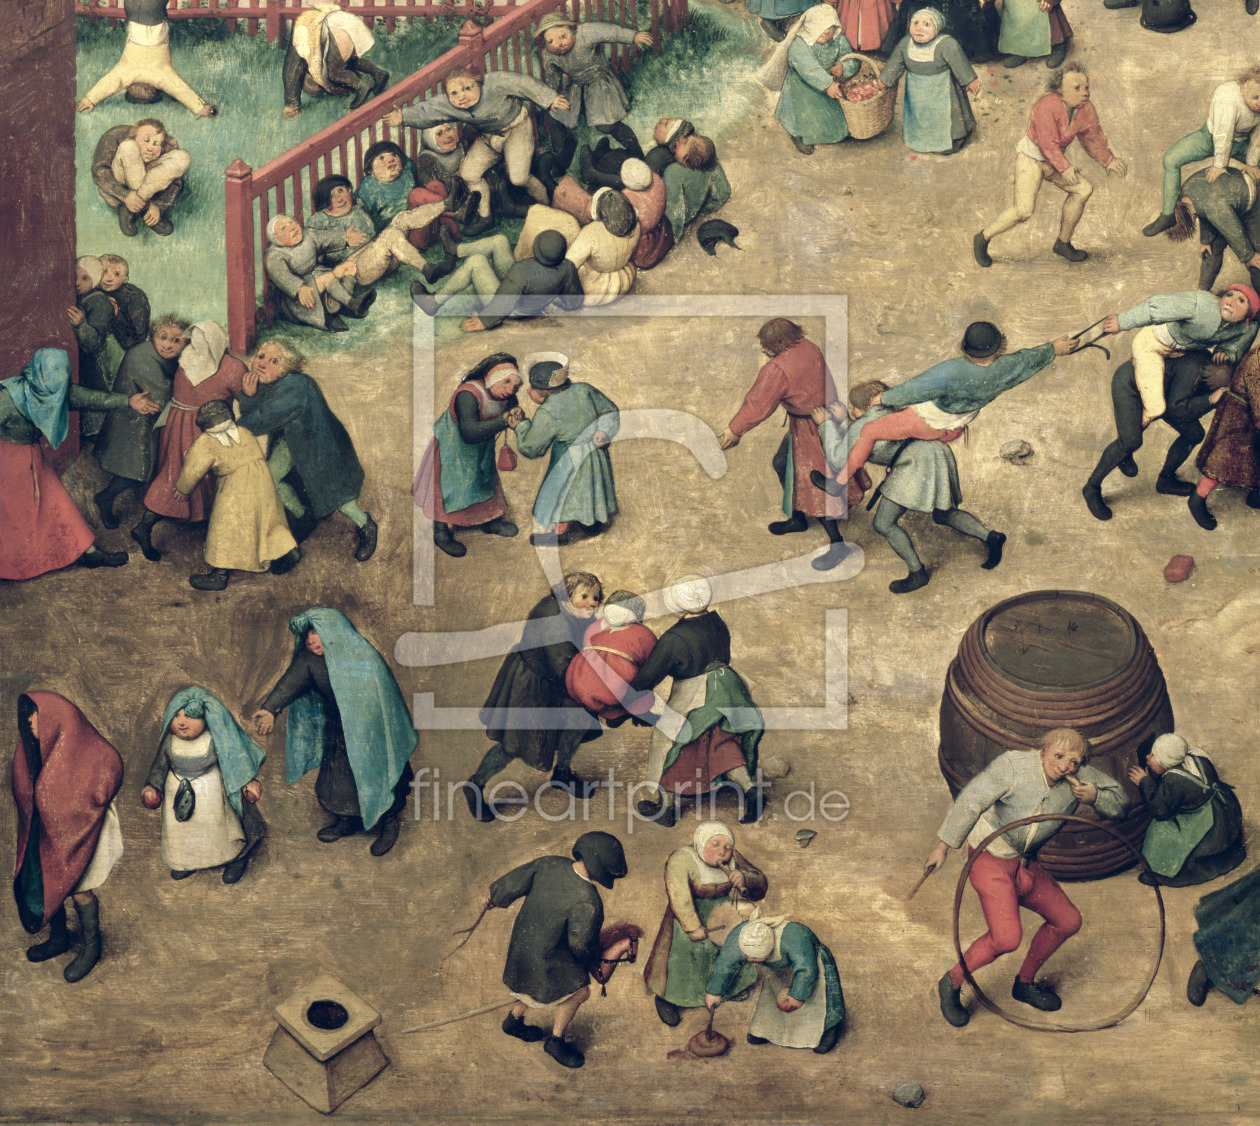 Bild-Nr.: 31002836 Children's Games : detail of left-hand section showing children bowling hoops, d erstellt von Bruegel, Pieter the Elder